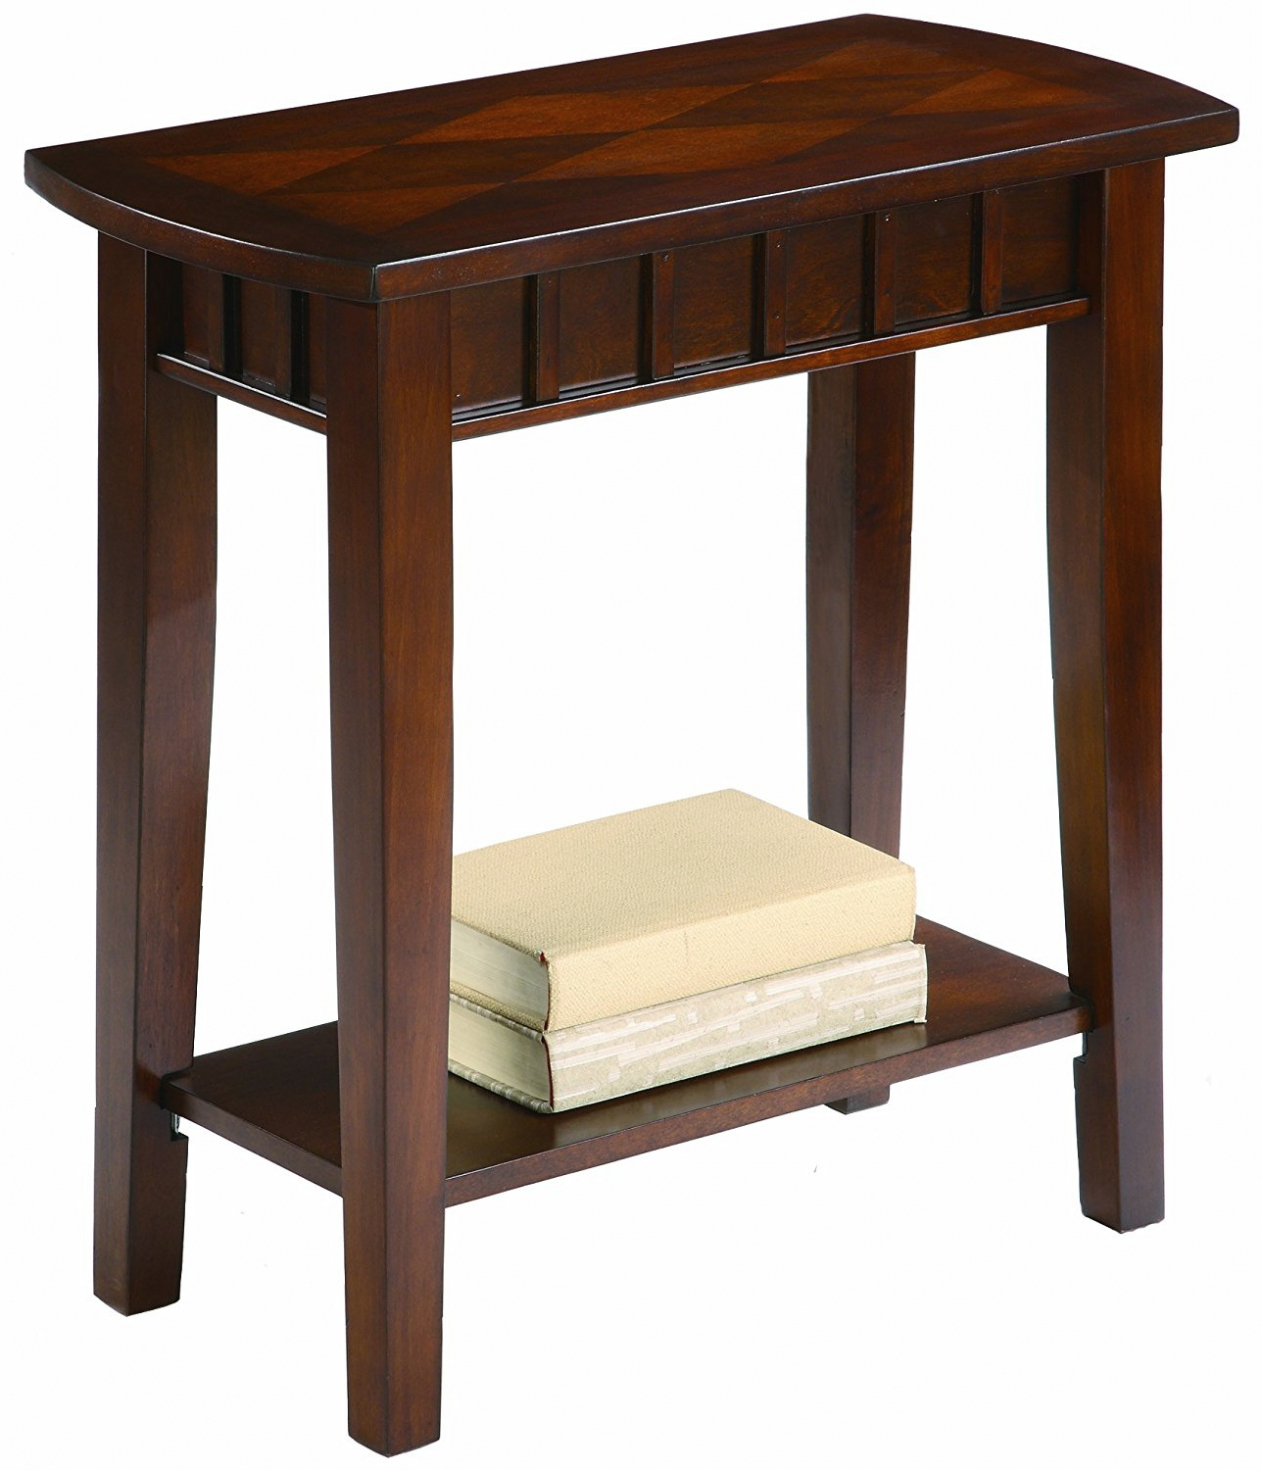 living side tables for small spaces accent end sofa room solid wood with amazing table inches high your home concept bay furniture bedroom lamp sets glass lamps grill tools west